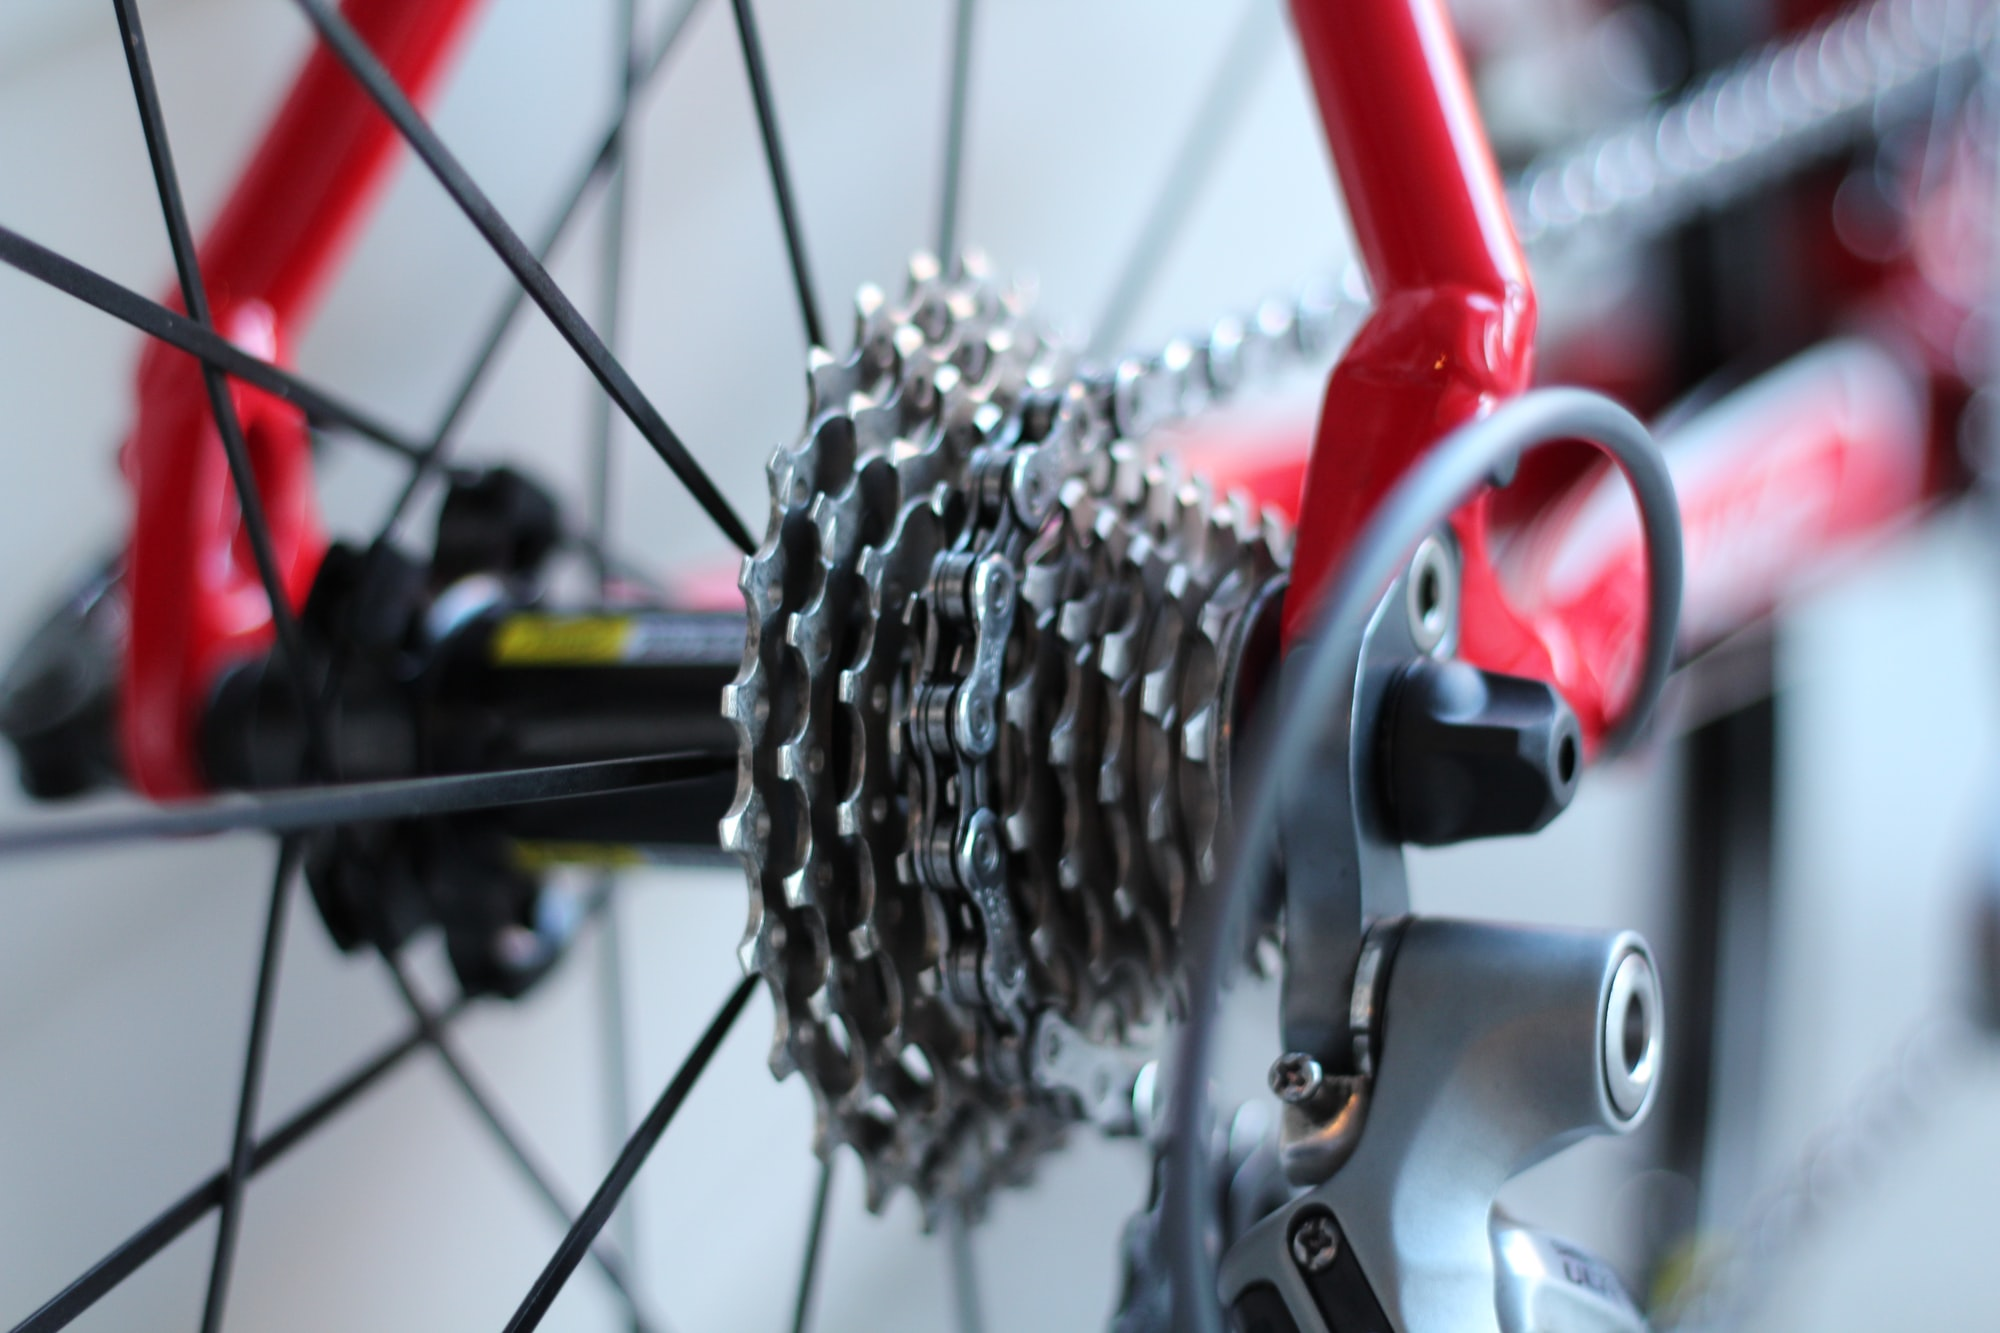 Wheel and gears of bicycle